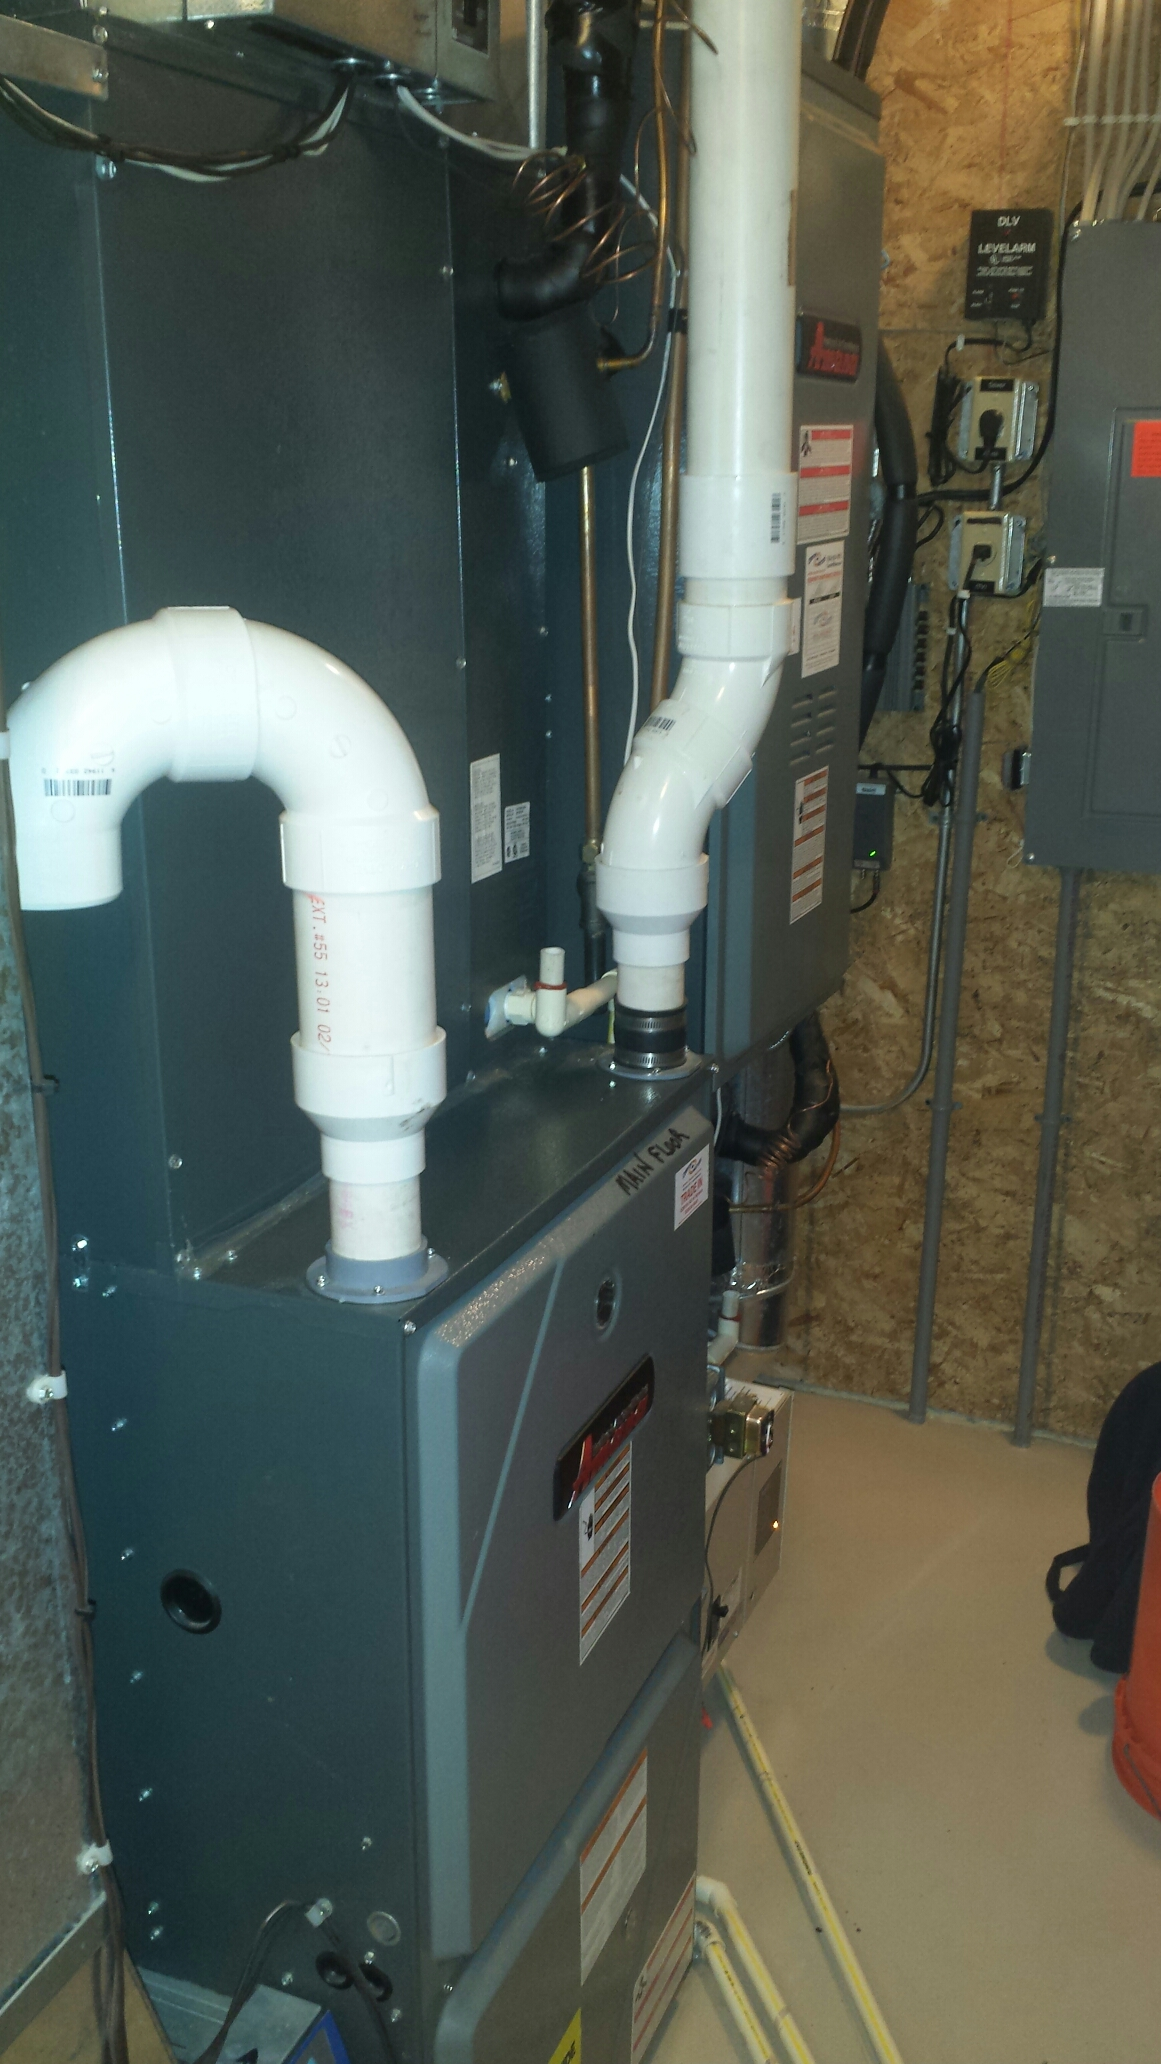 Maple Plain, MN - Heating maintenance. Performed a cleaning and tune up on two Amana furnaces and three Heat-N-Glo fireplaces. Also replaced two Honeywell media filters, a T&P valve on a water heater and installed two ECM variable speed motor surge protectors.